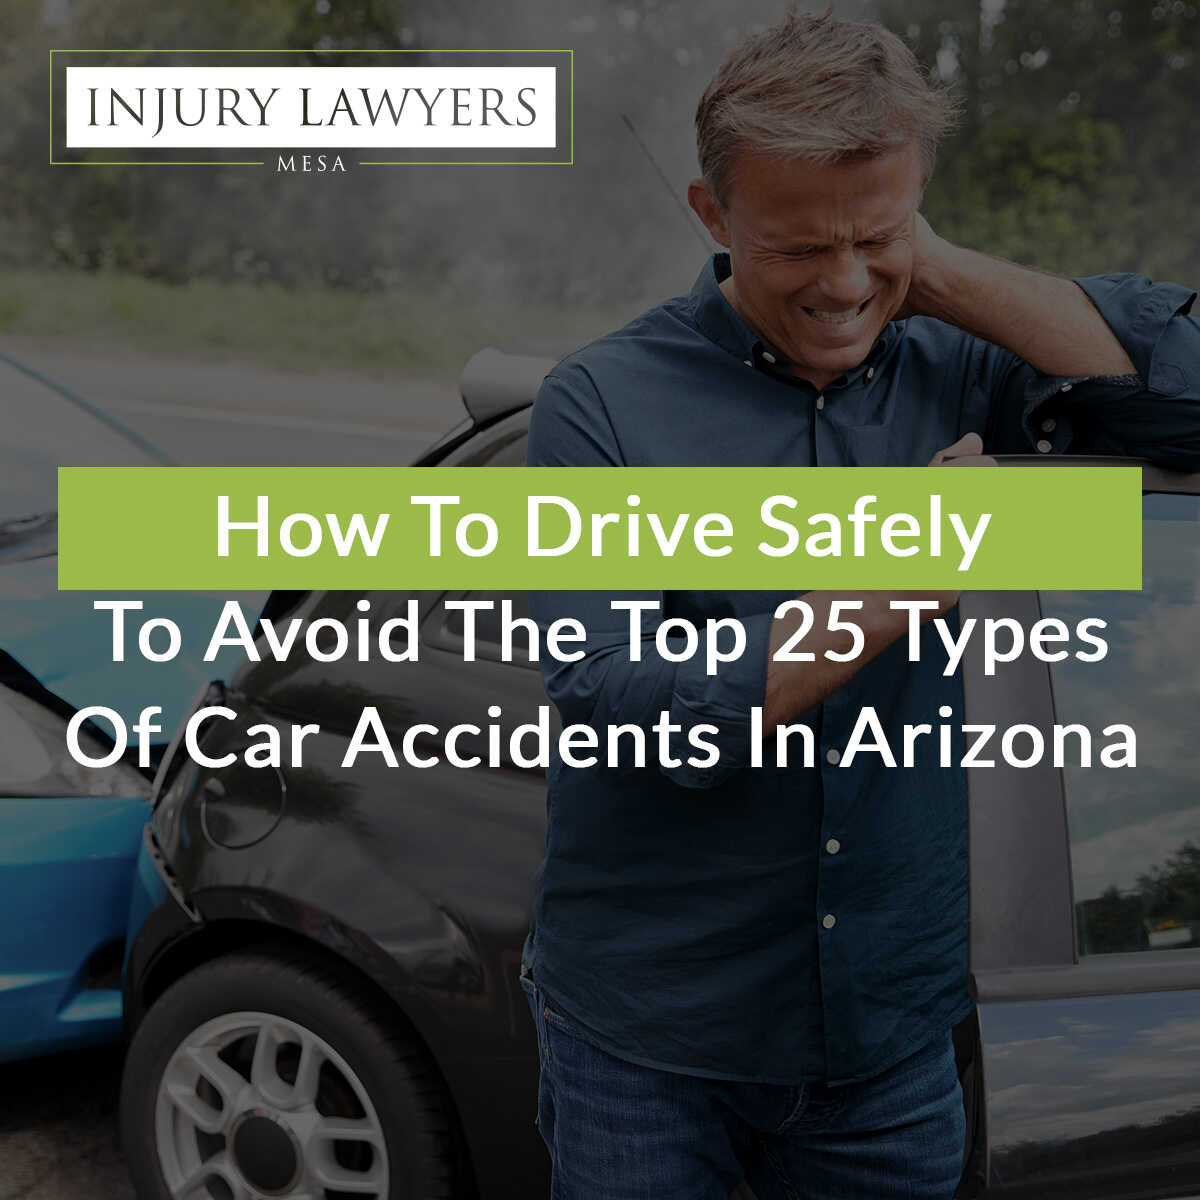 How To Drive Safely To Avoid The Top 25 Types Of Care Accidents In Arizona